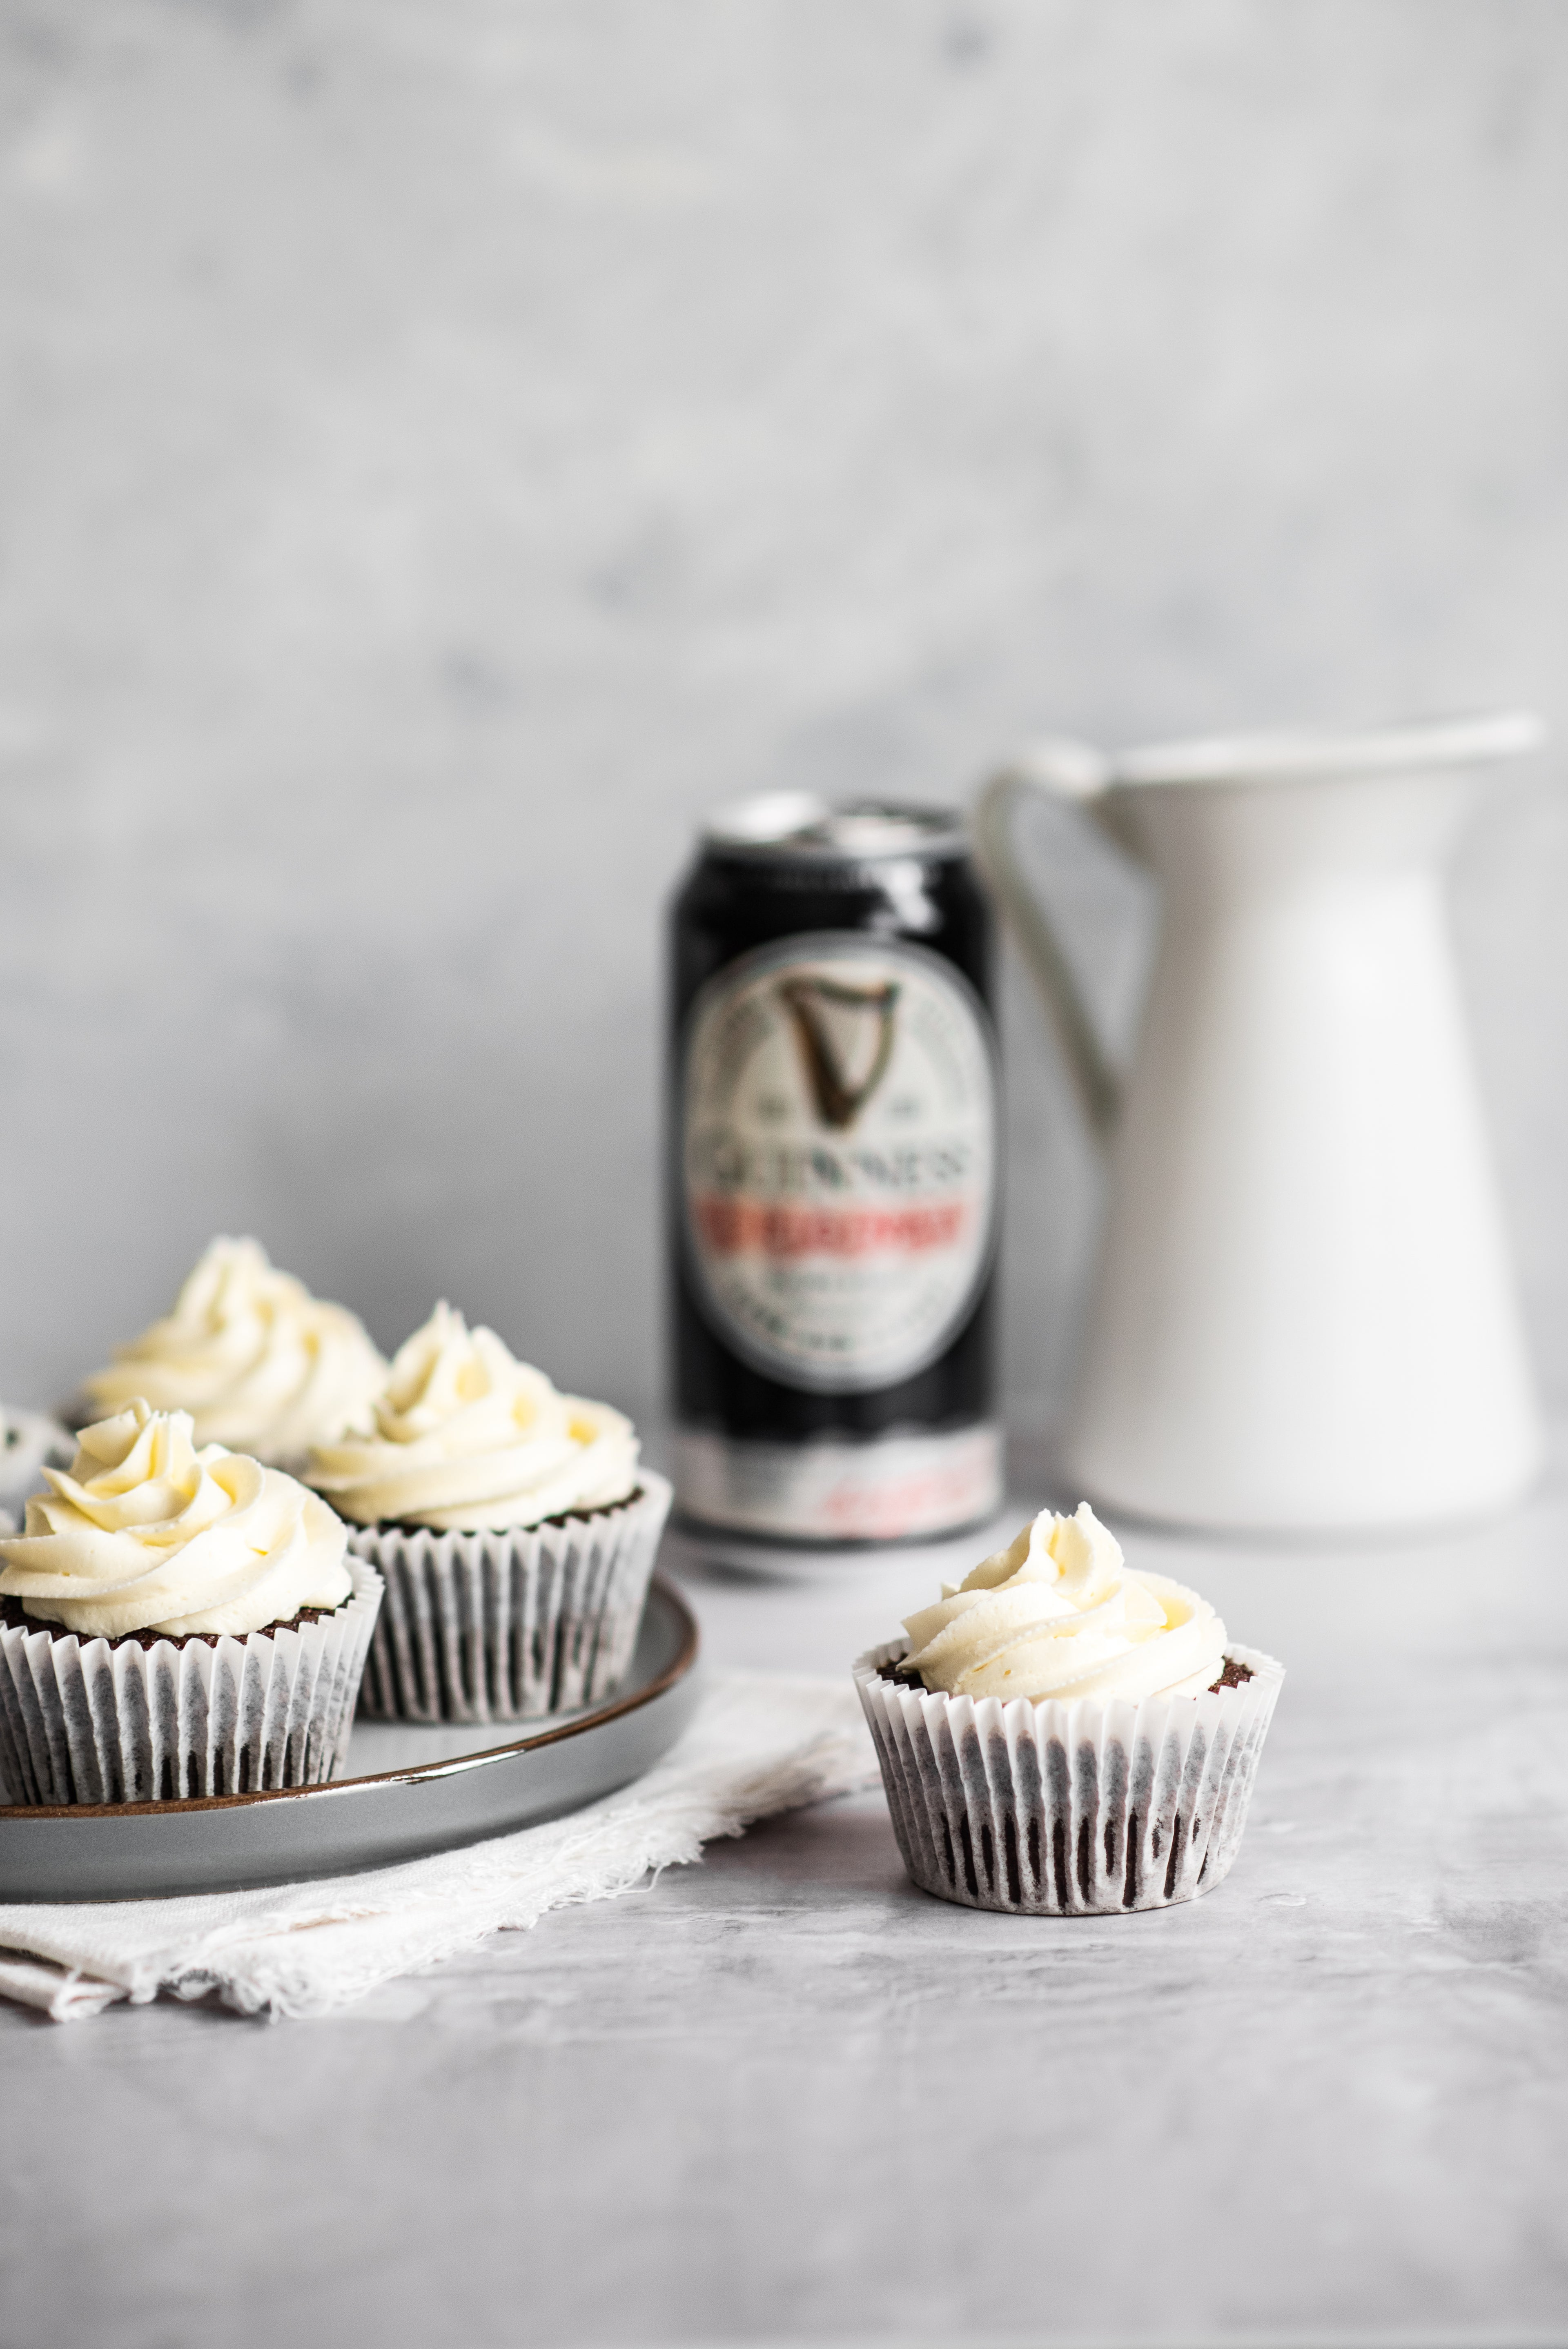 Cupcake centre of image with Guinness in the background